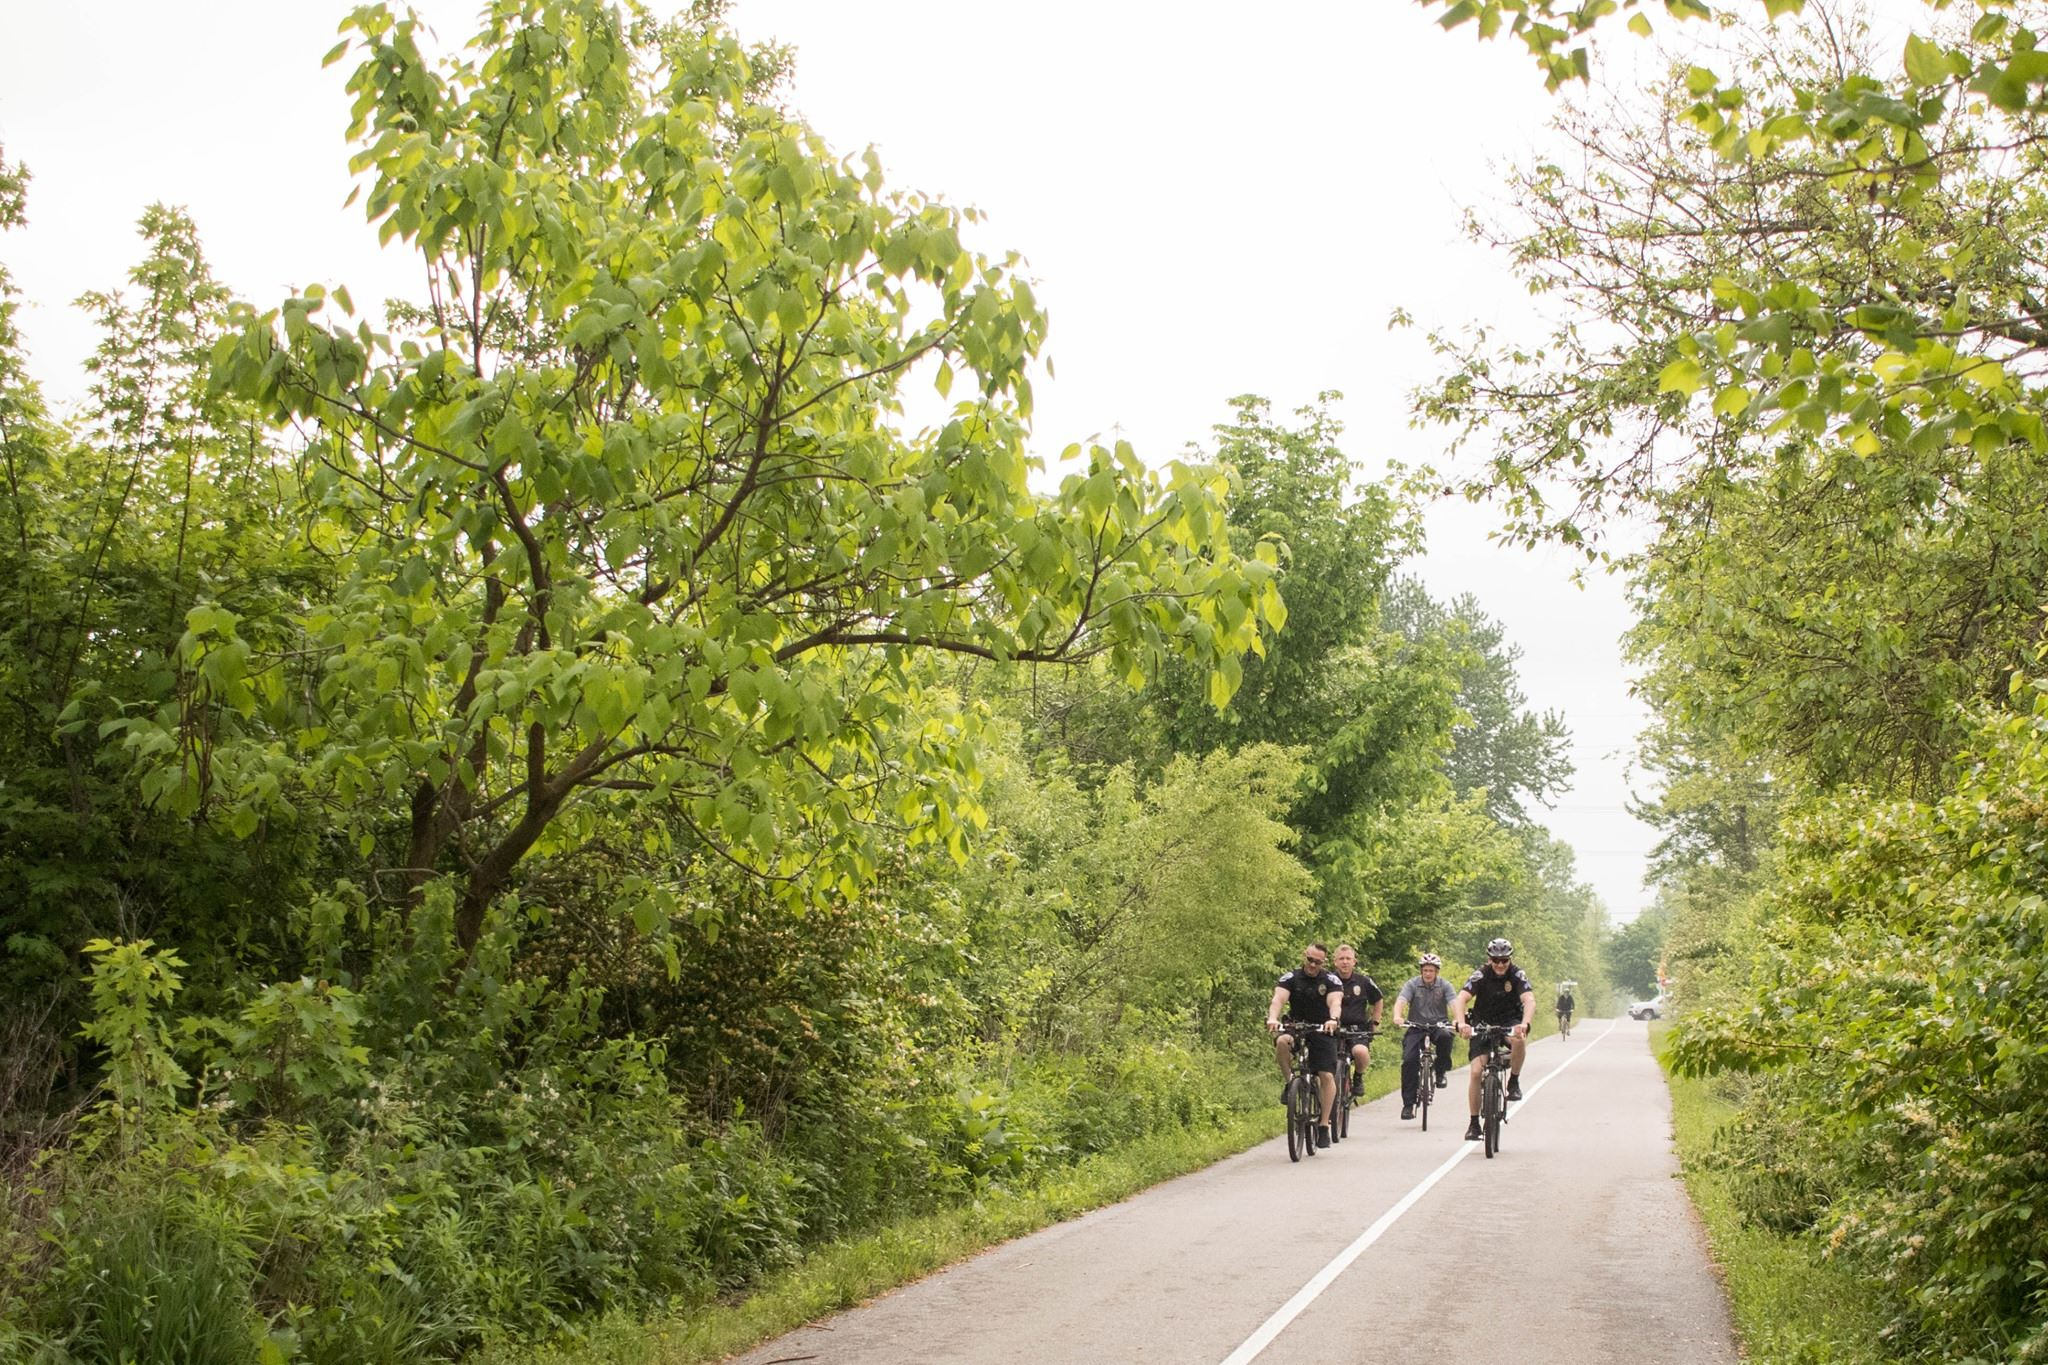 Bicycle Riders Riding Along a Tree Lined Path